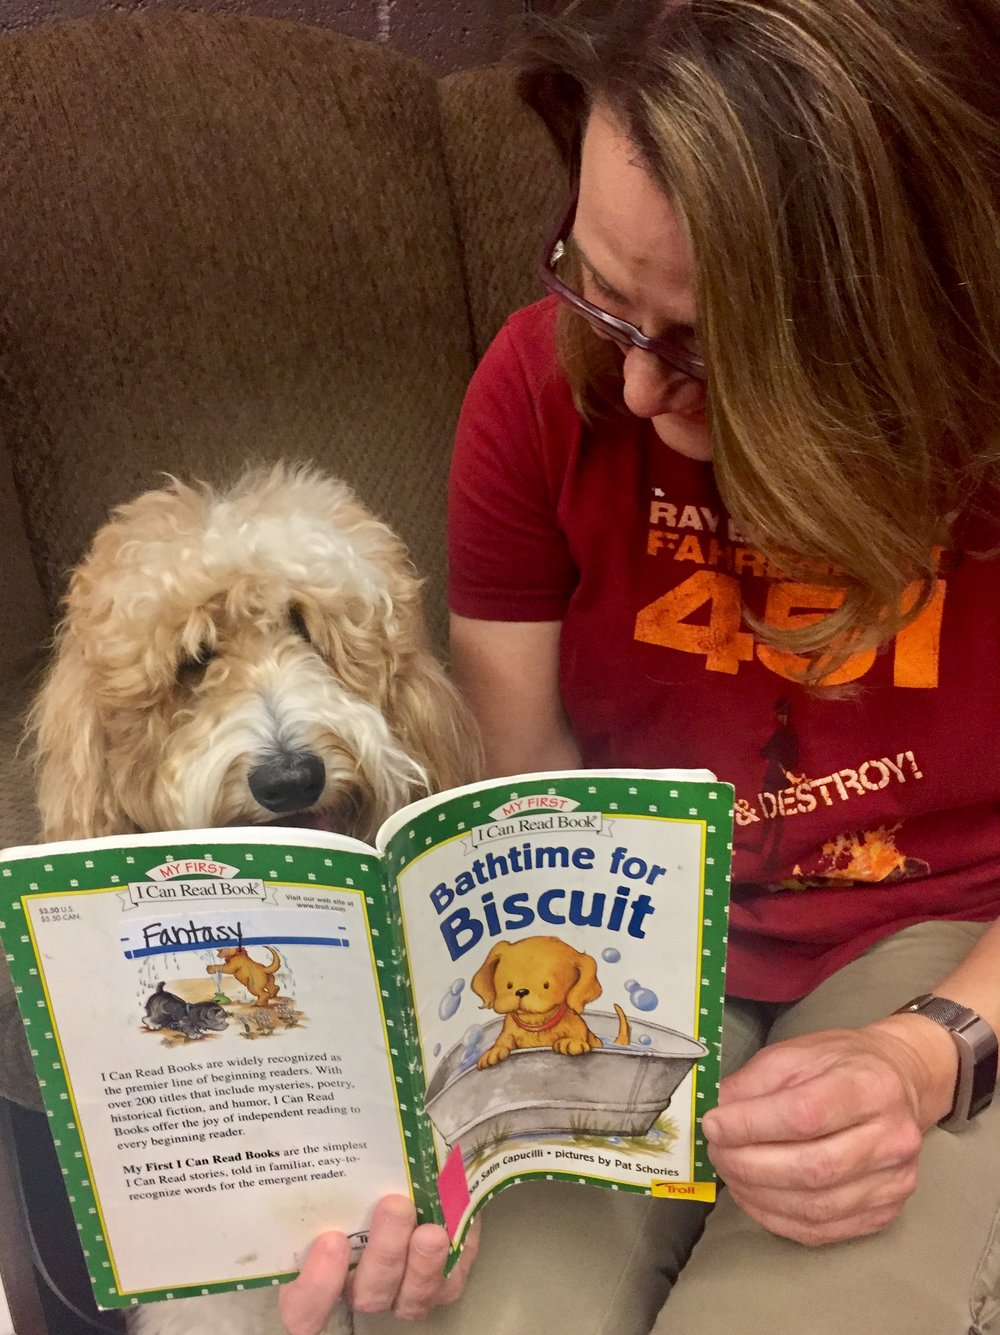 Bernie McSquare and I snuggle up in the comfy chair of the kids section at Bookmans Used Books to read Bathtime for Biscuit together.